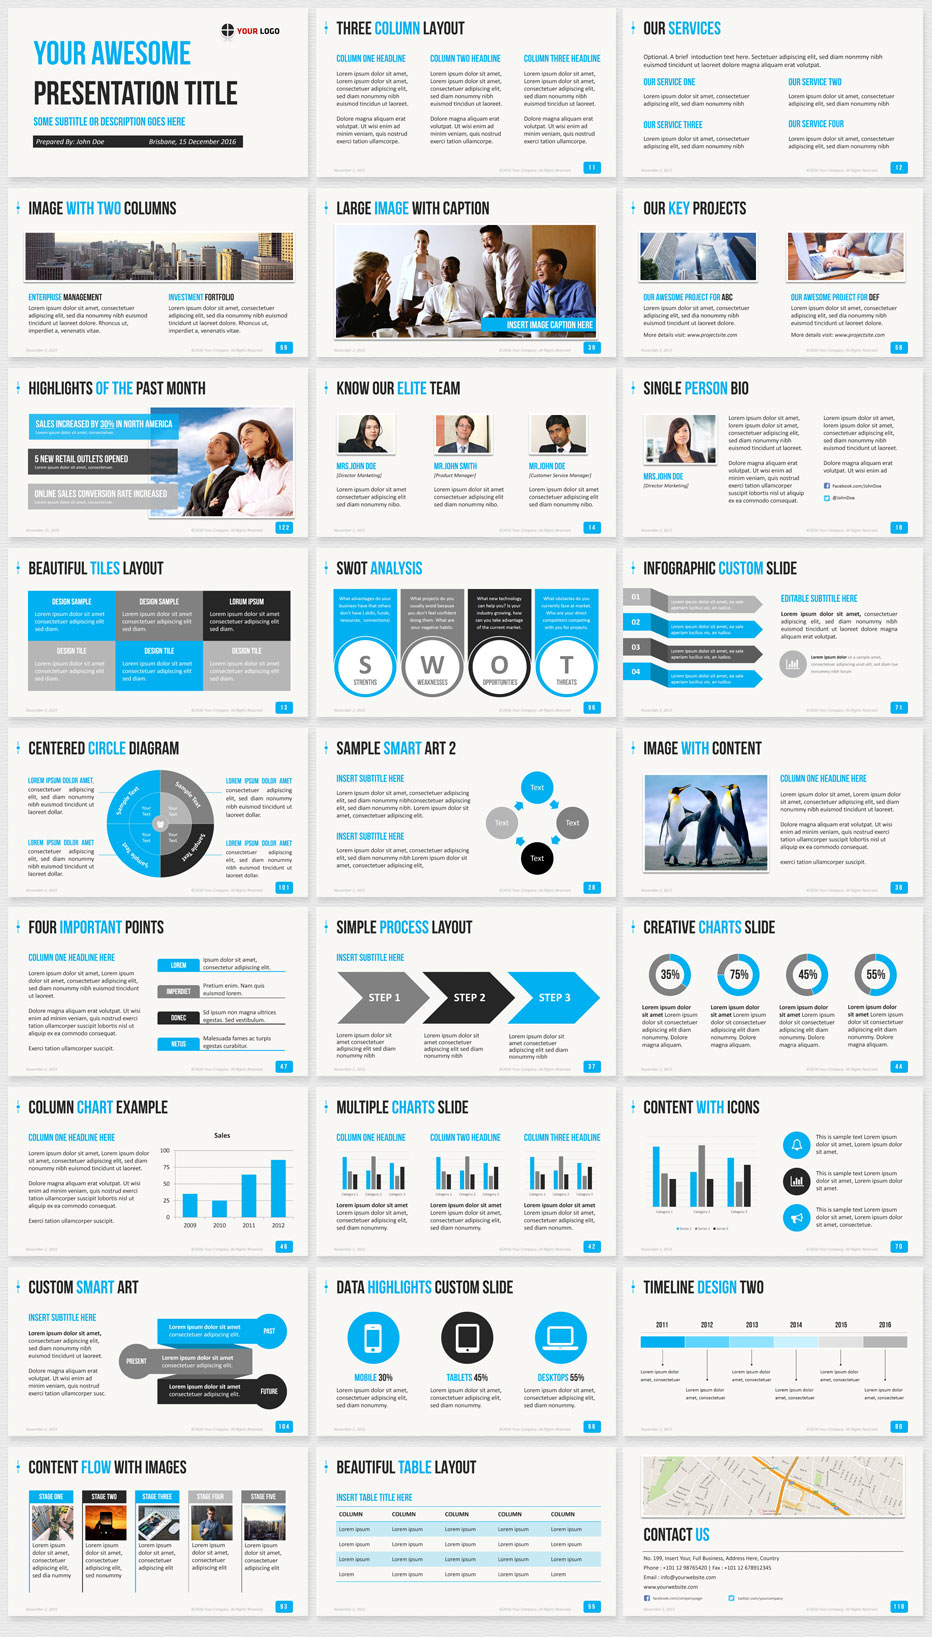 Professional presentation templates or free powerpoint themes professional presentation templates contain separate masters for multiple slide design layouts friedricerecipe Images